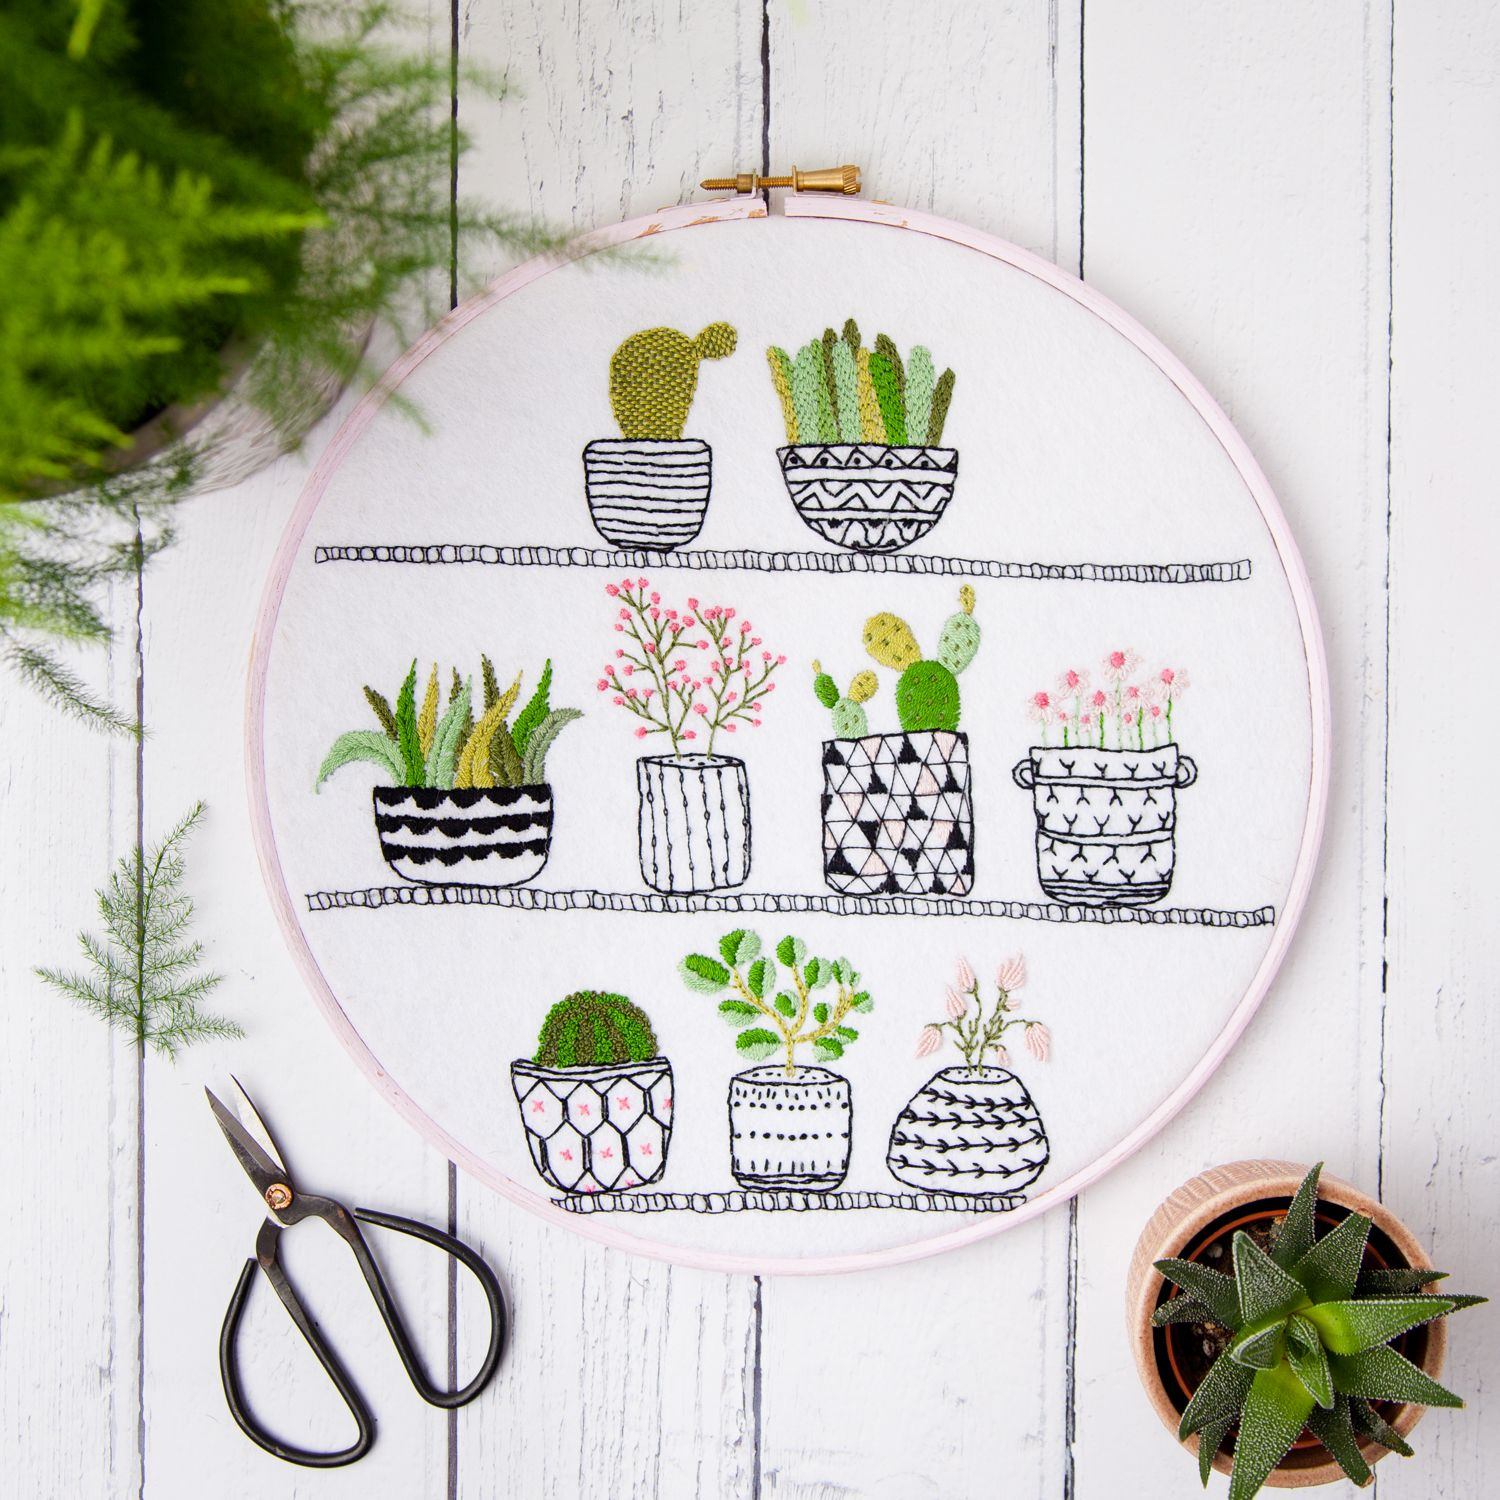 Rosie S House Plants Hand Embroidery Hoop Succulents Pdf Instant Download Pattern Hand Embroidery Kit Embroidery Kits Hand Embroidery